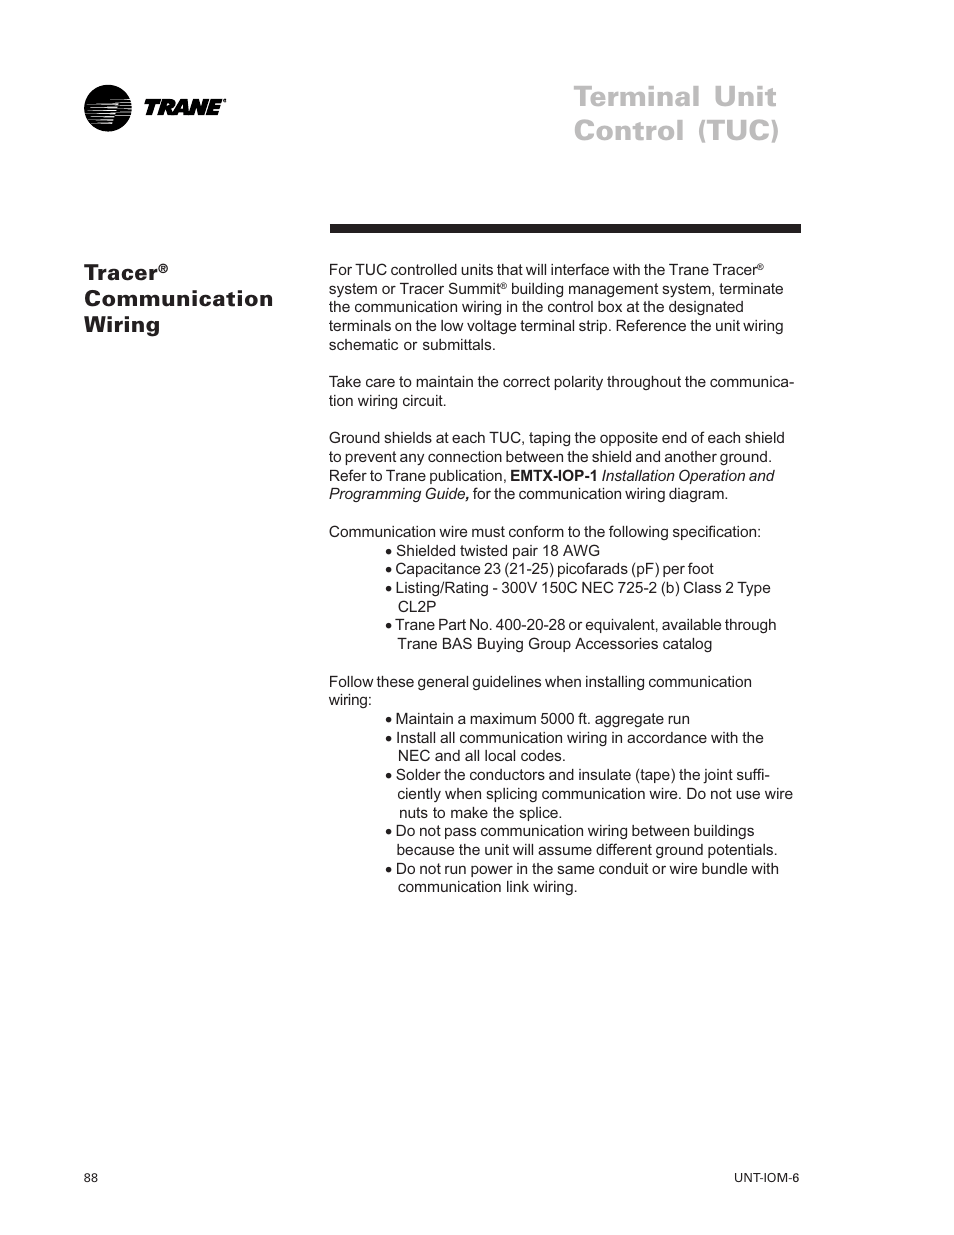 hight resolution of tracer communication wiring terminal unit control tuc tracer trane lo user manual page 88 136